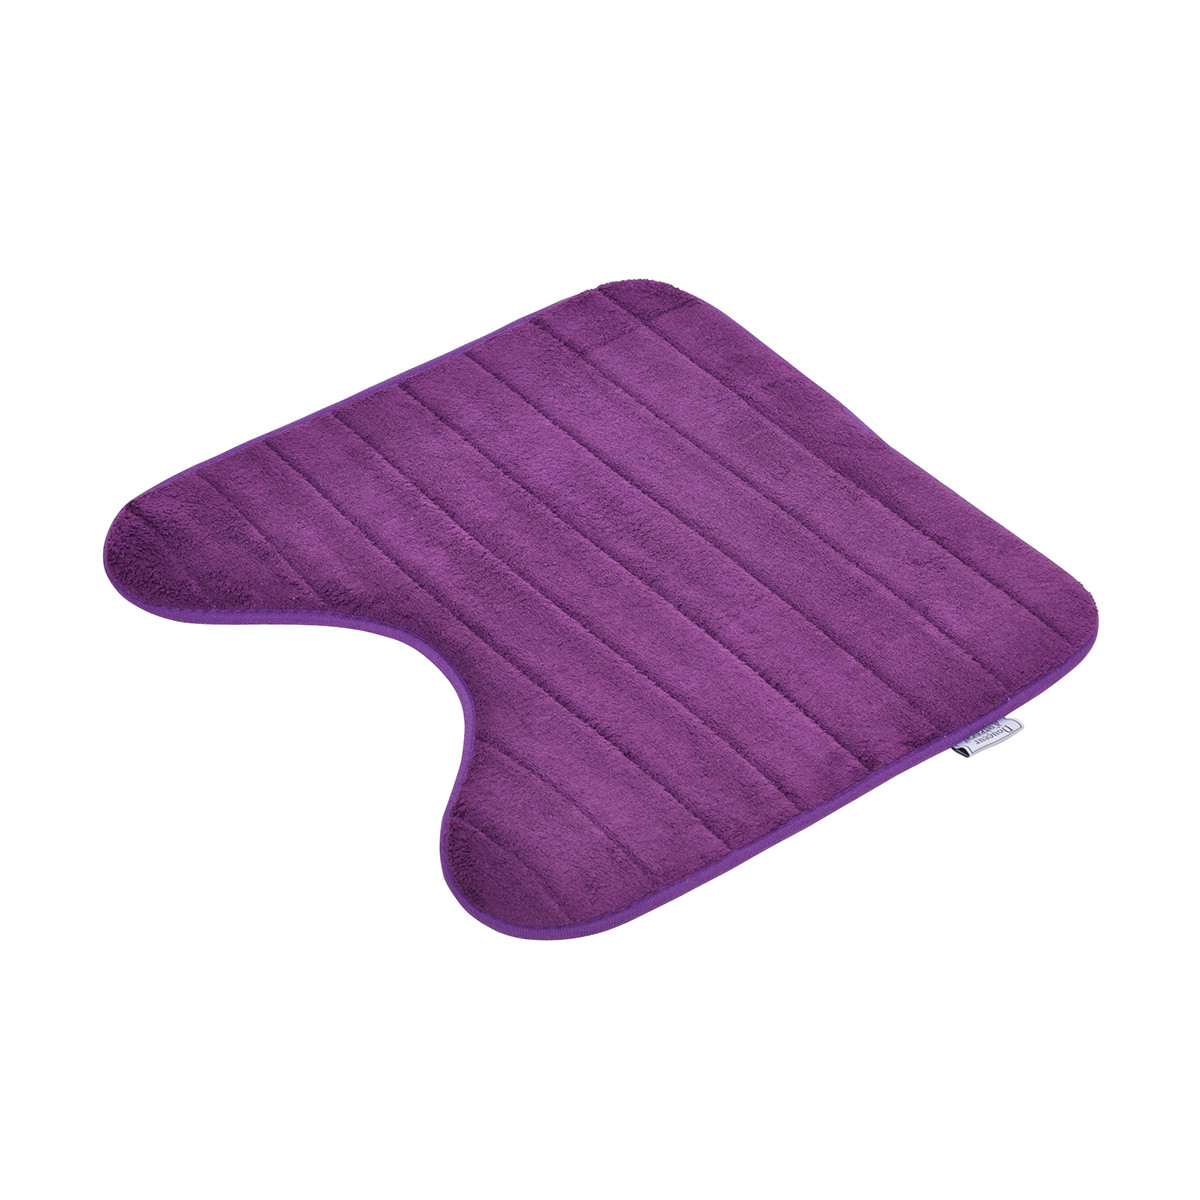 Πατάκι Λεκάνης (45×45) Vitamine Stripes Plum 6GMB335PR